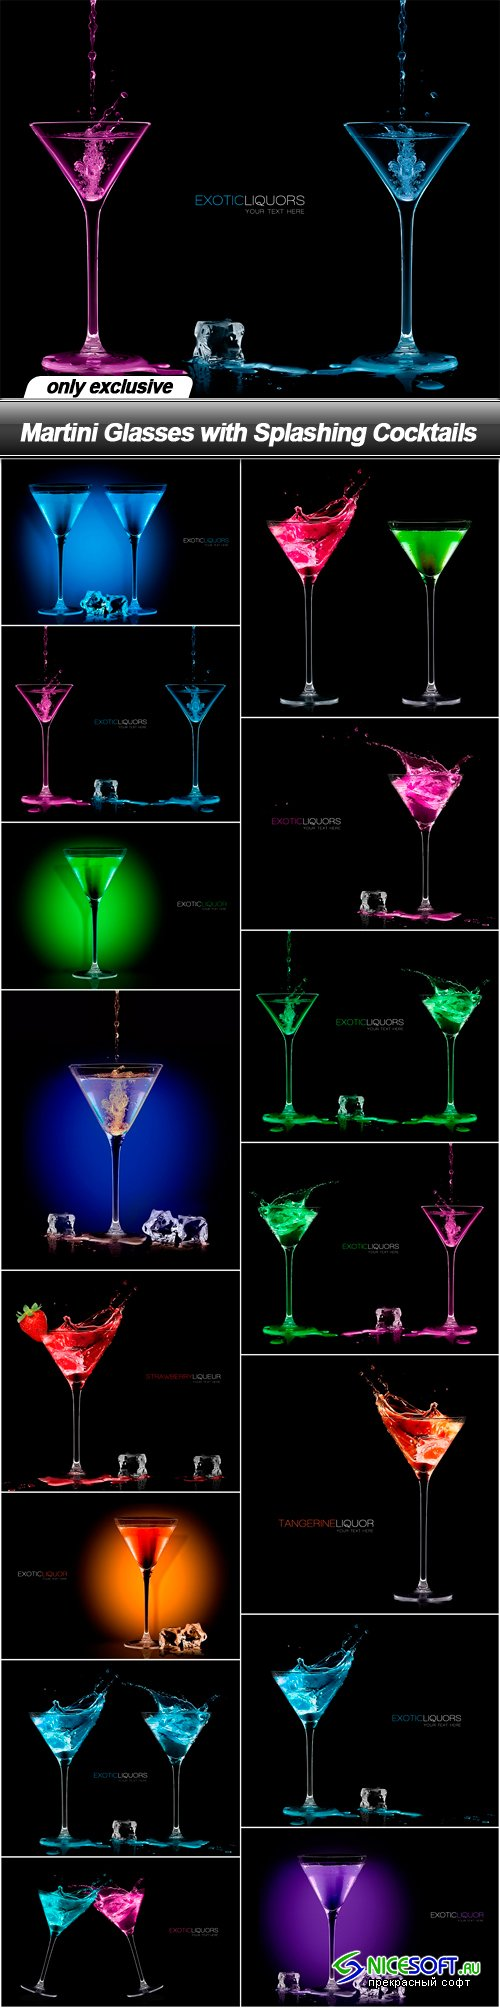 Martini Glasses with Splashing Cocktails